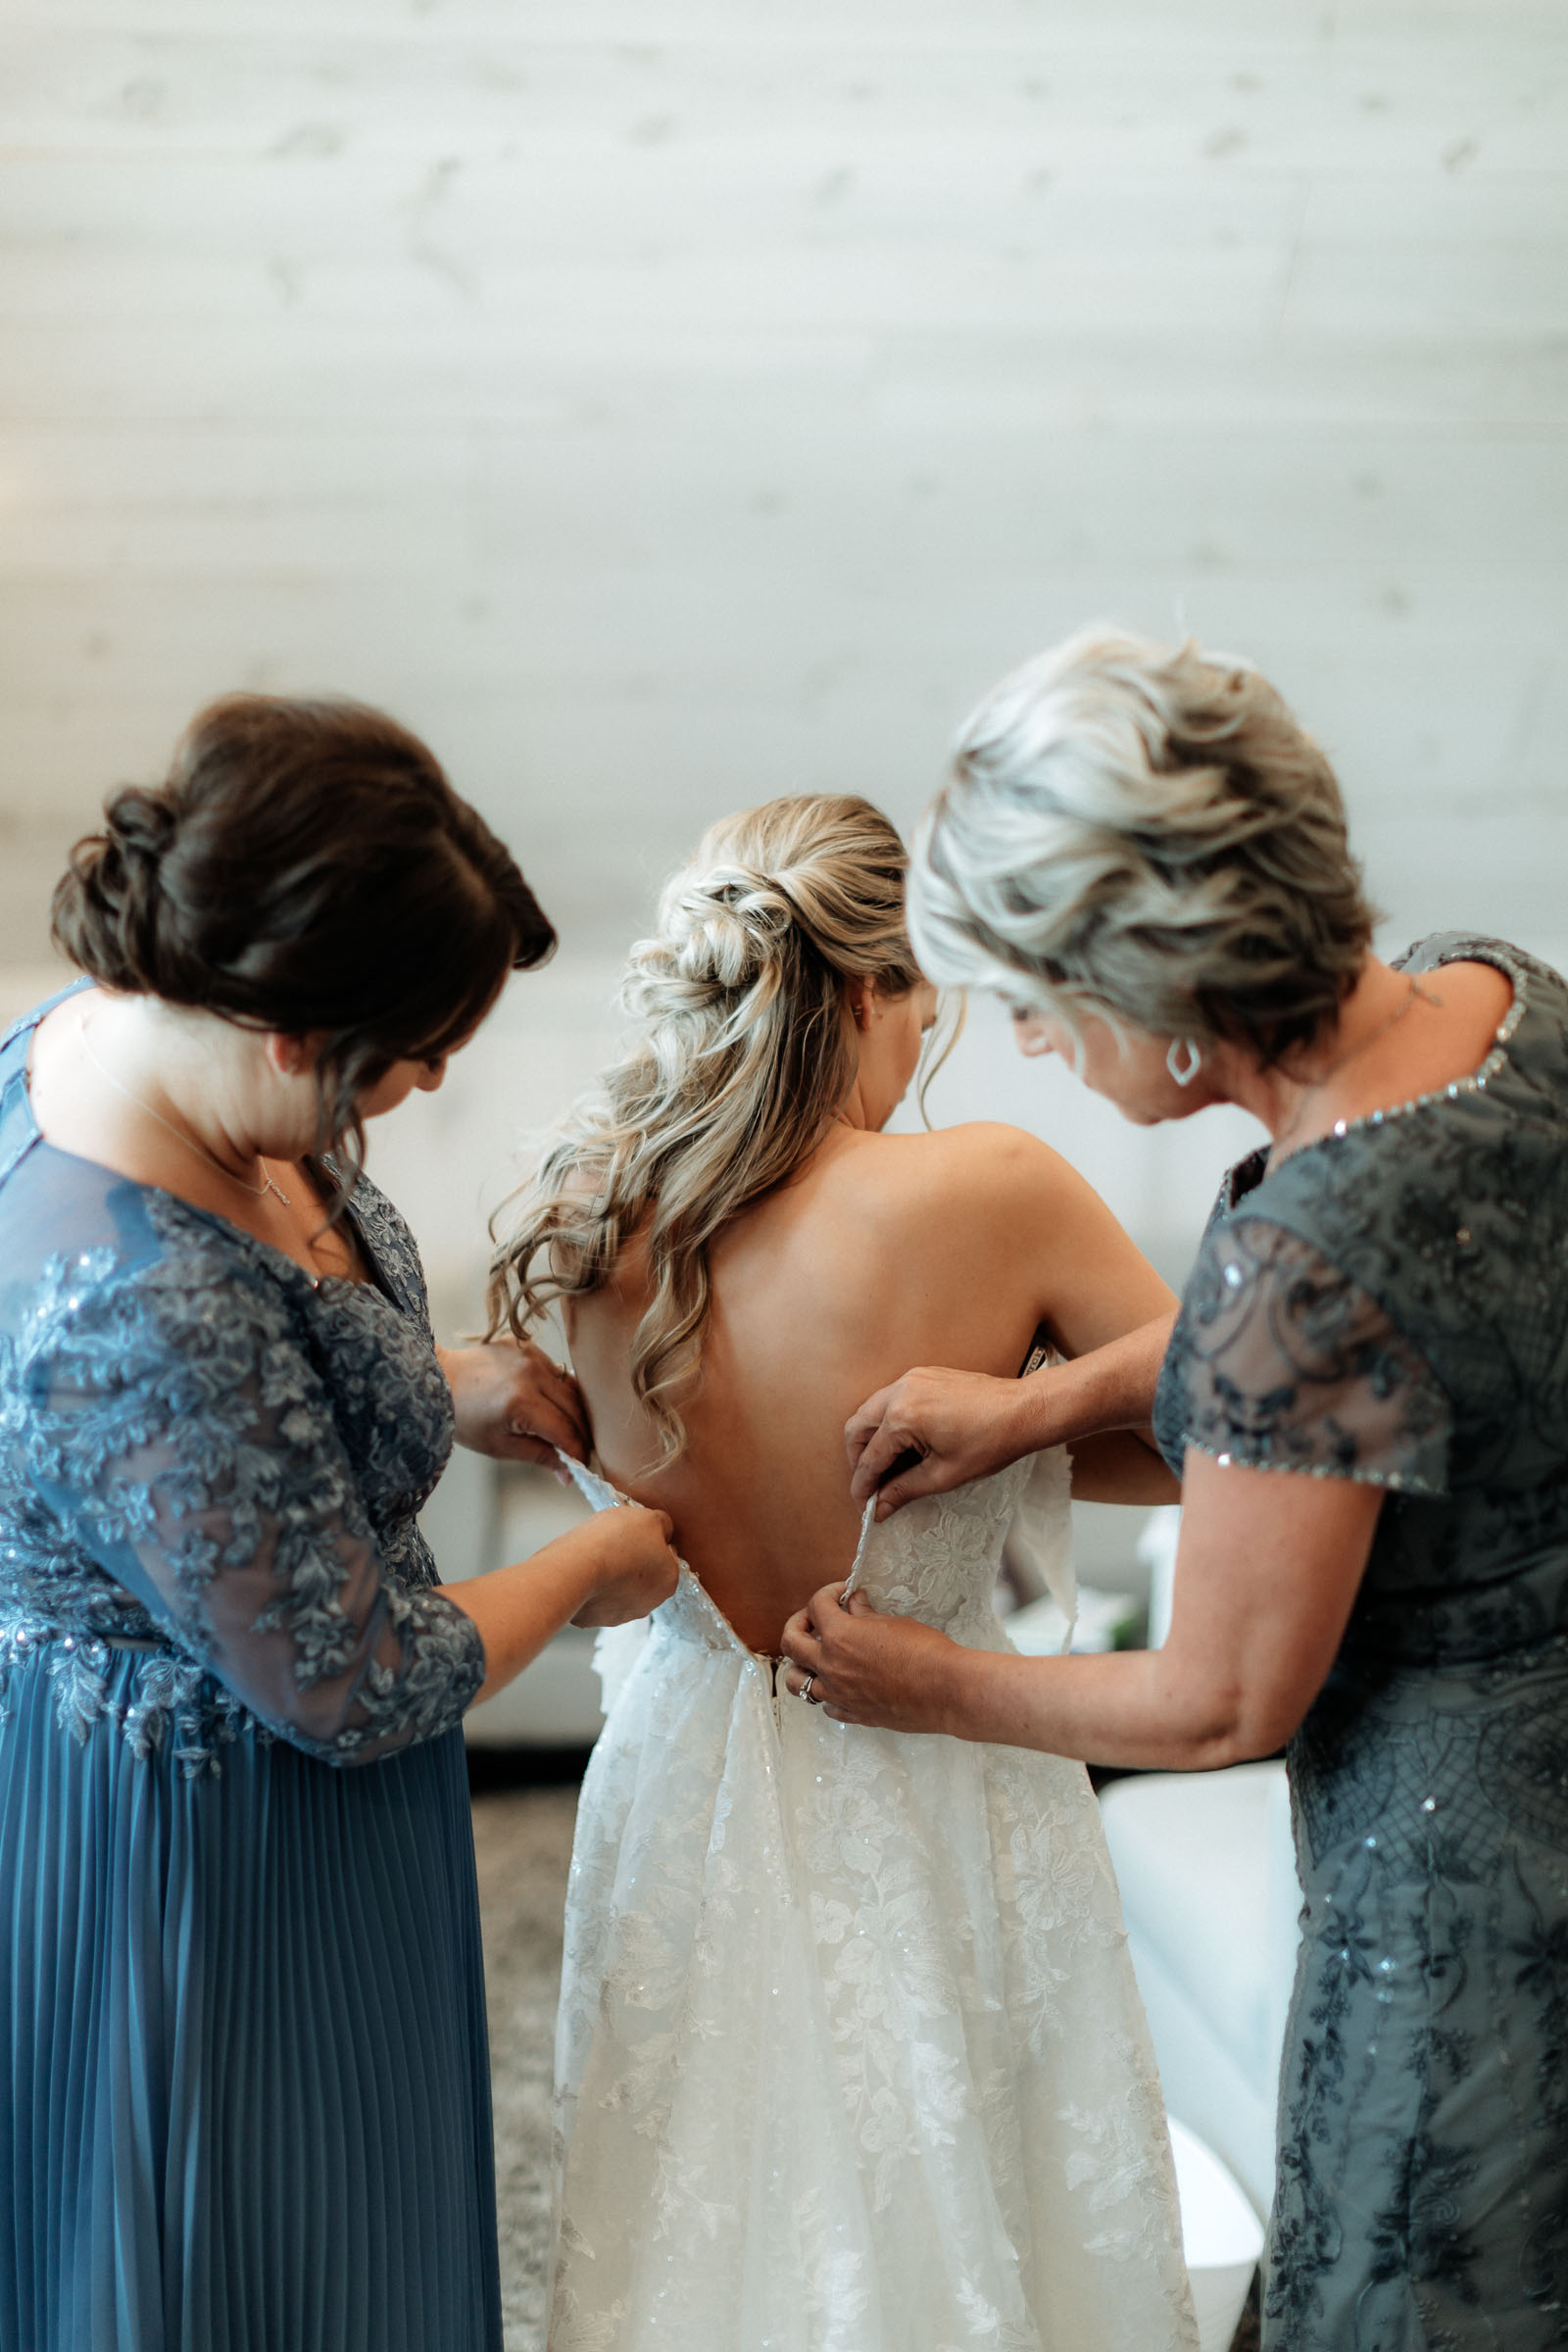 brides mom and mother in law helping her zip up her wedding dress